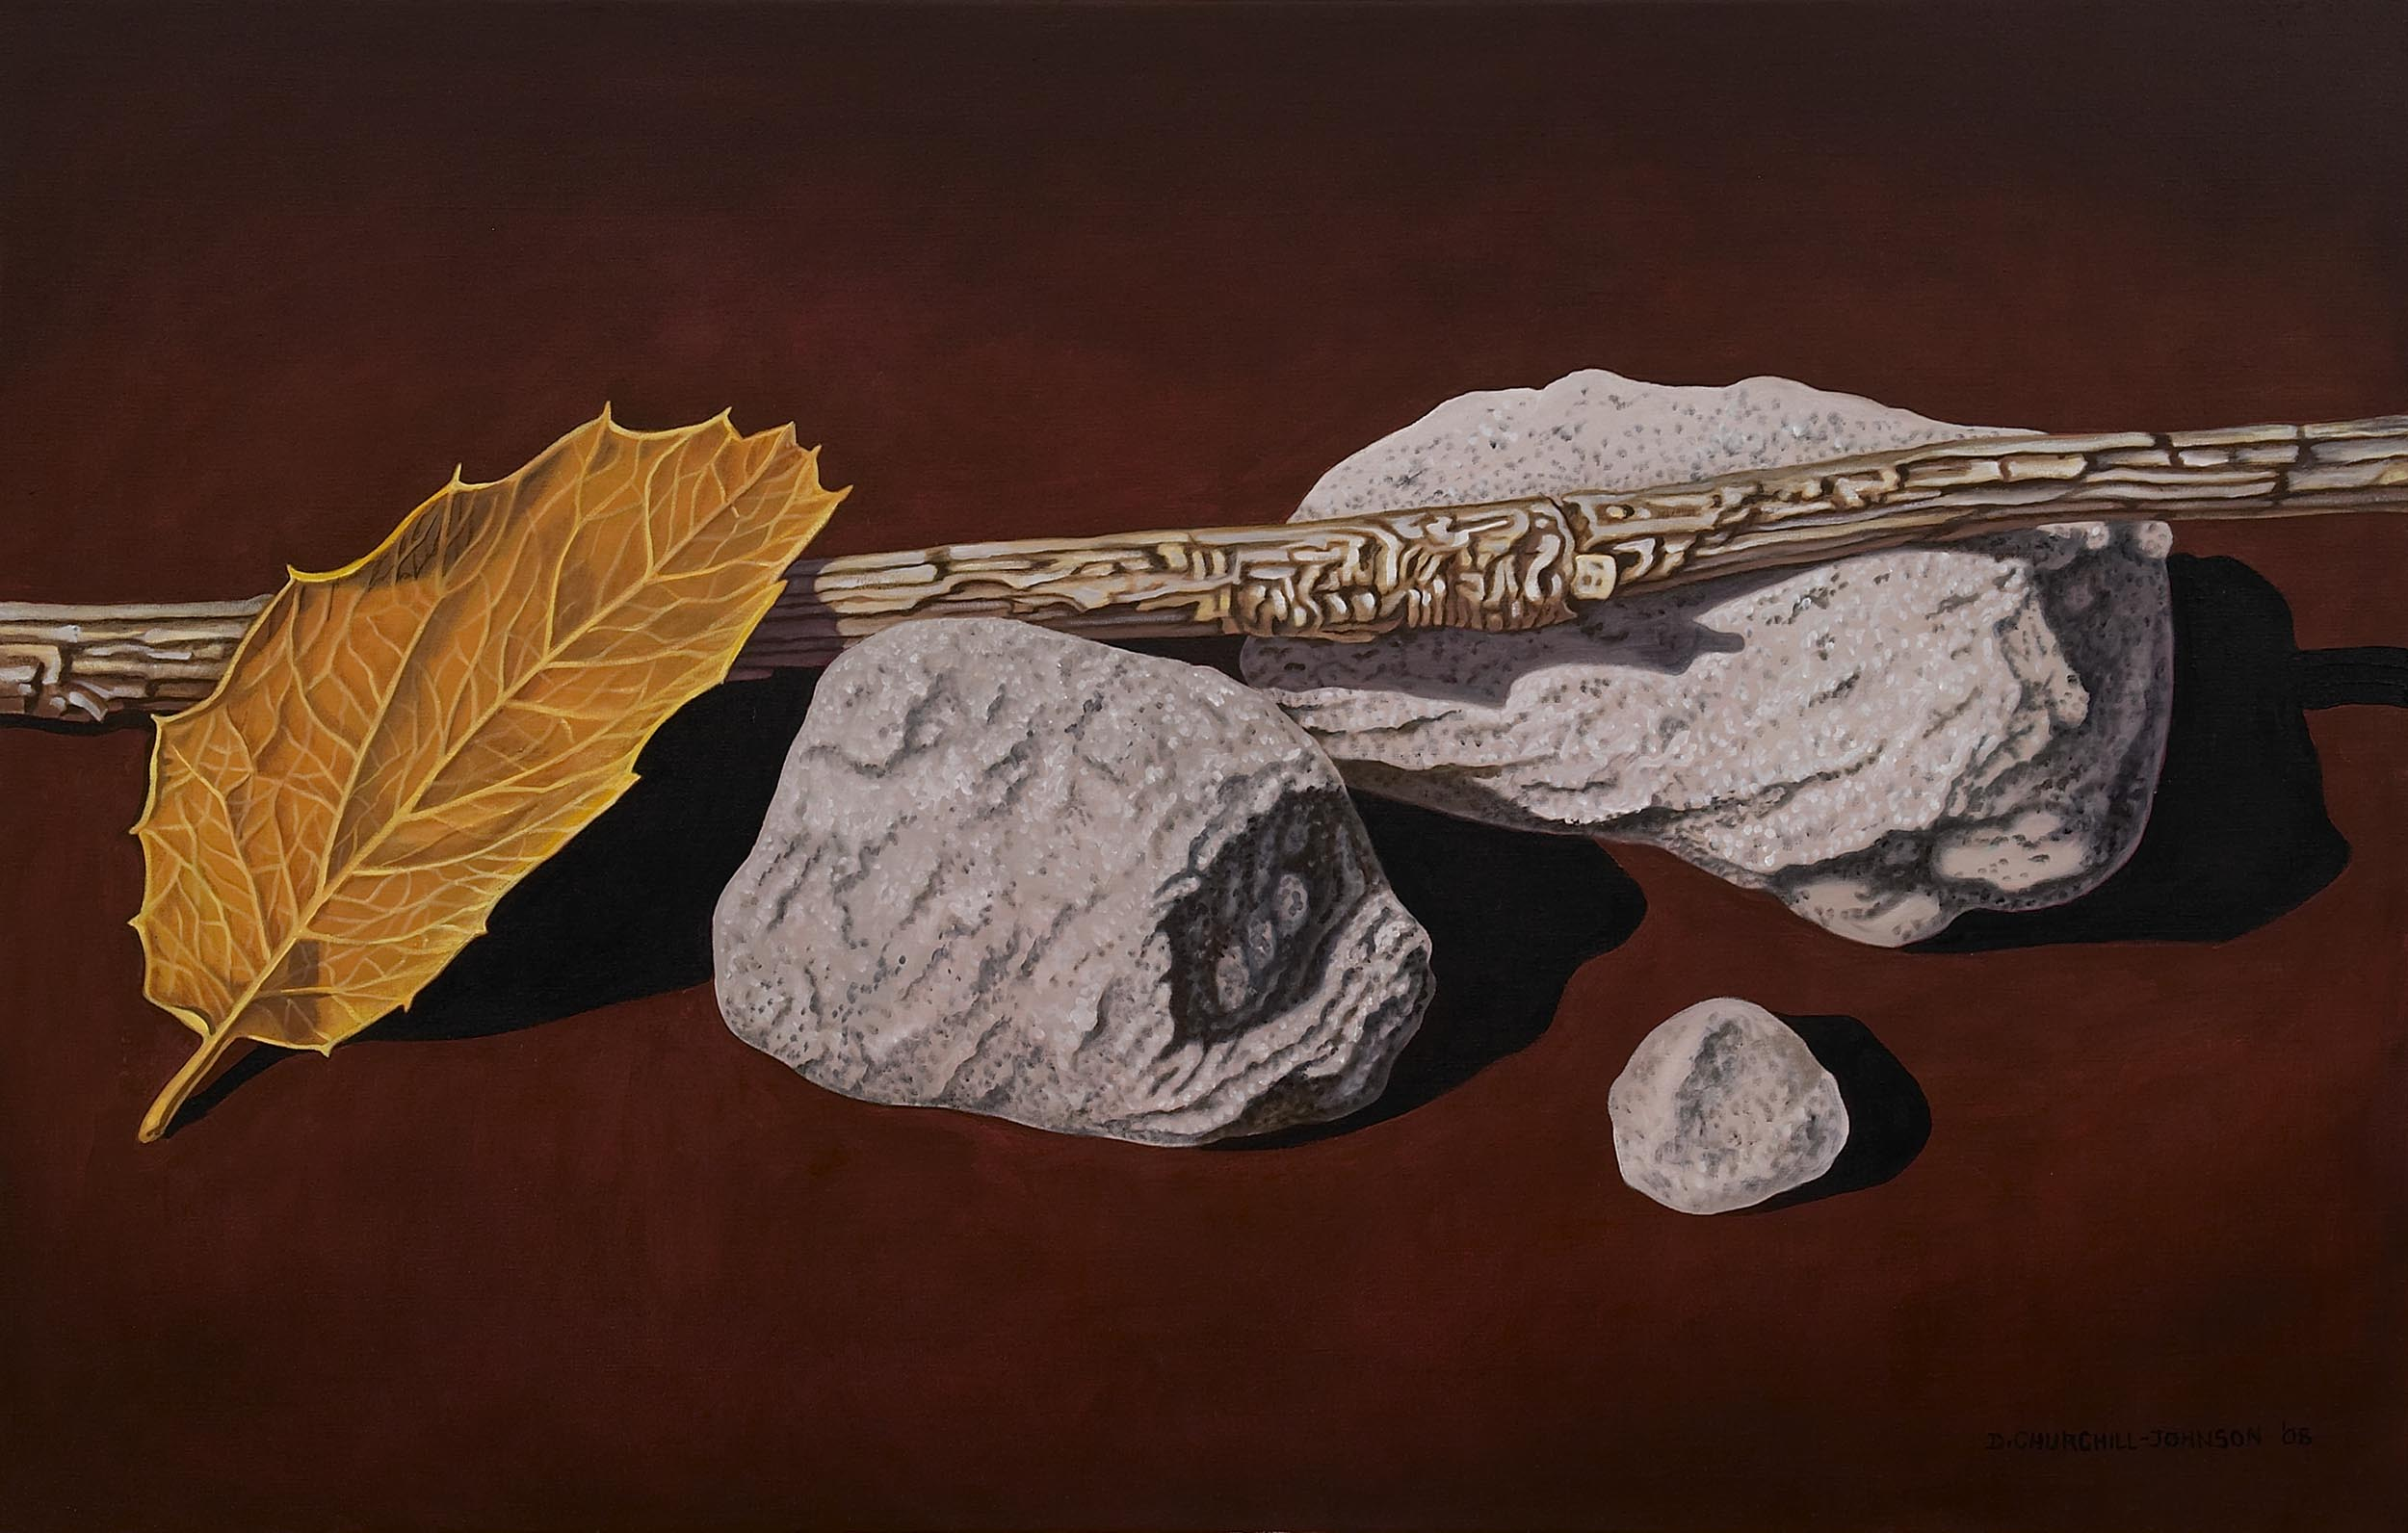 Leaf and Twig, 24 x 36 inches